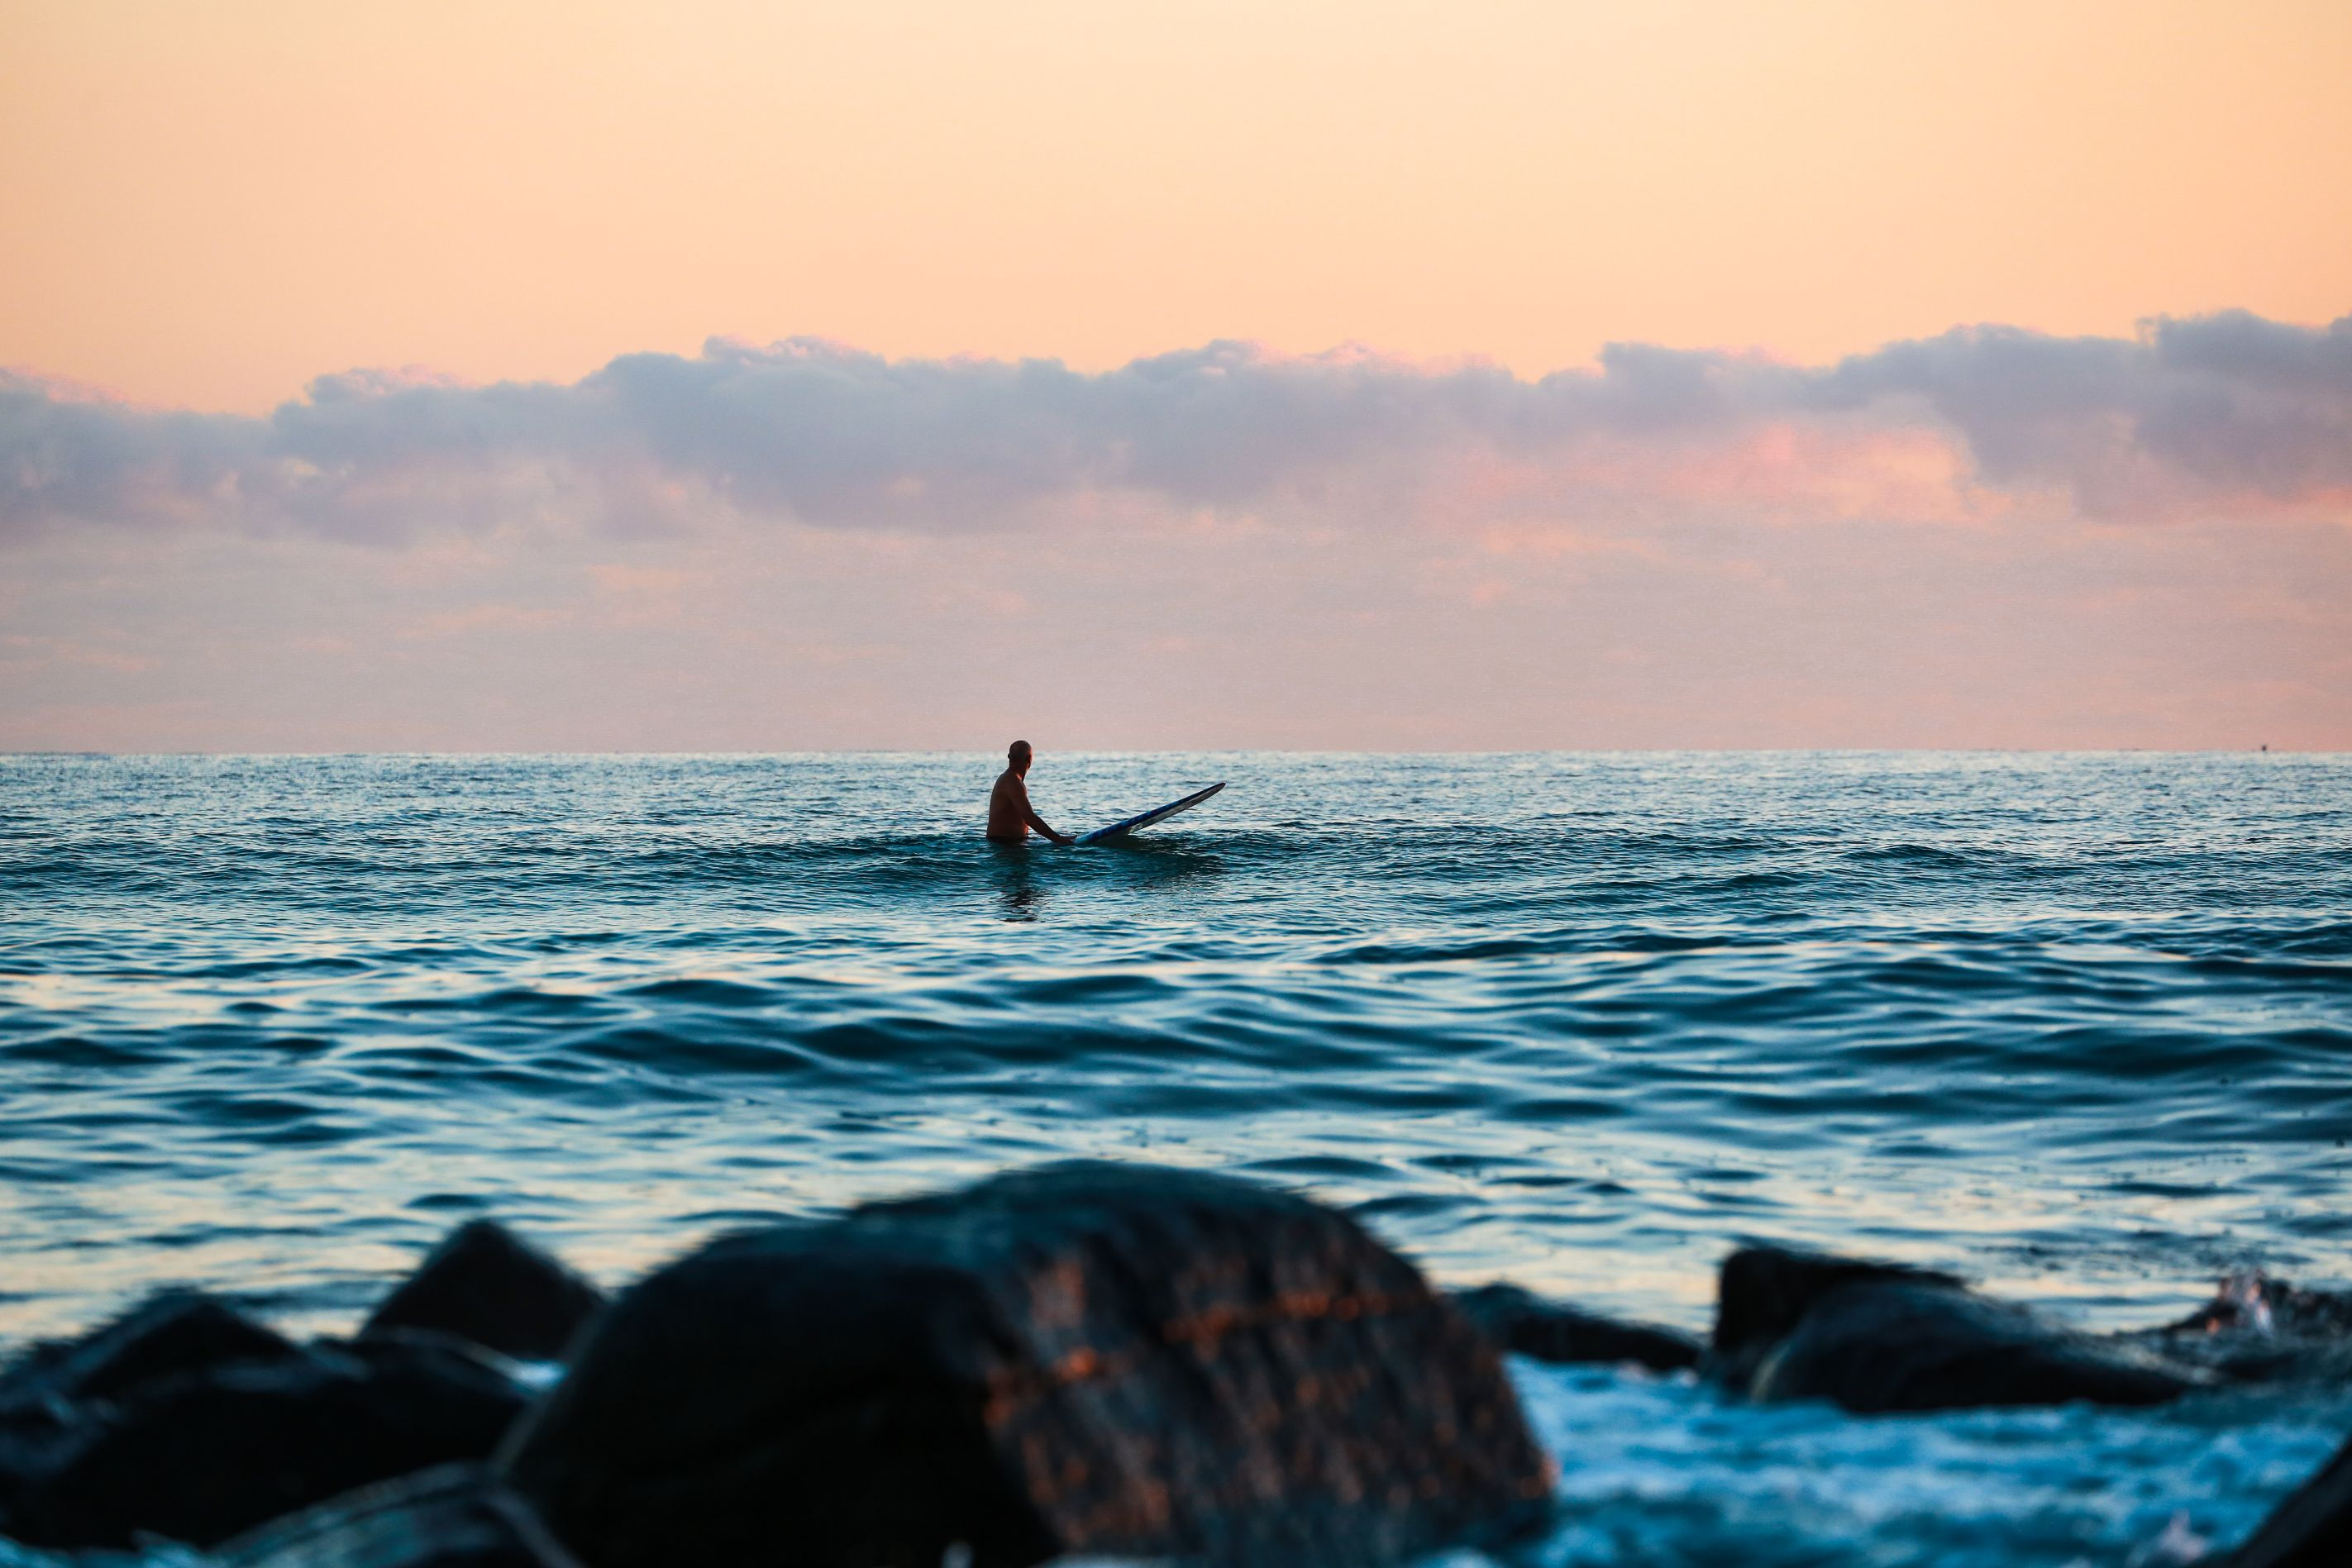 Surfer waiting in the water for a wave at sunset.